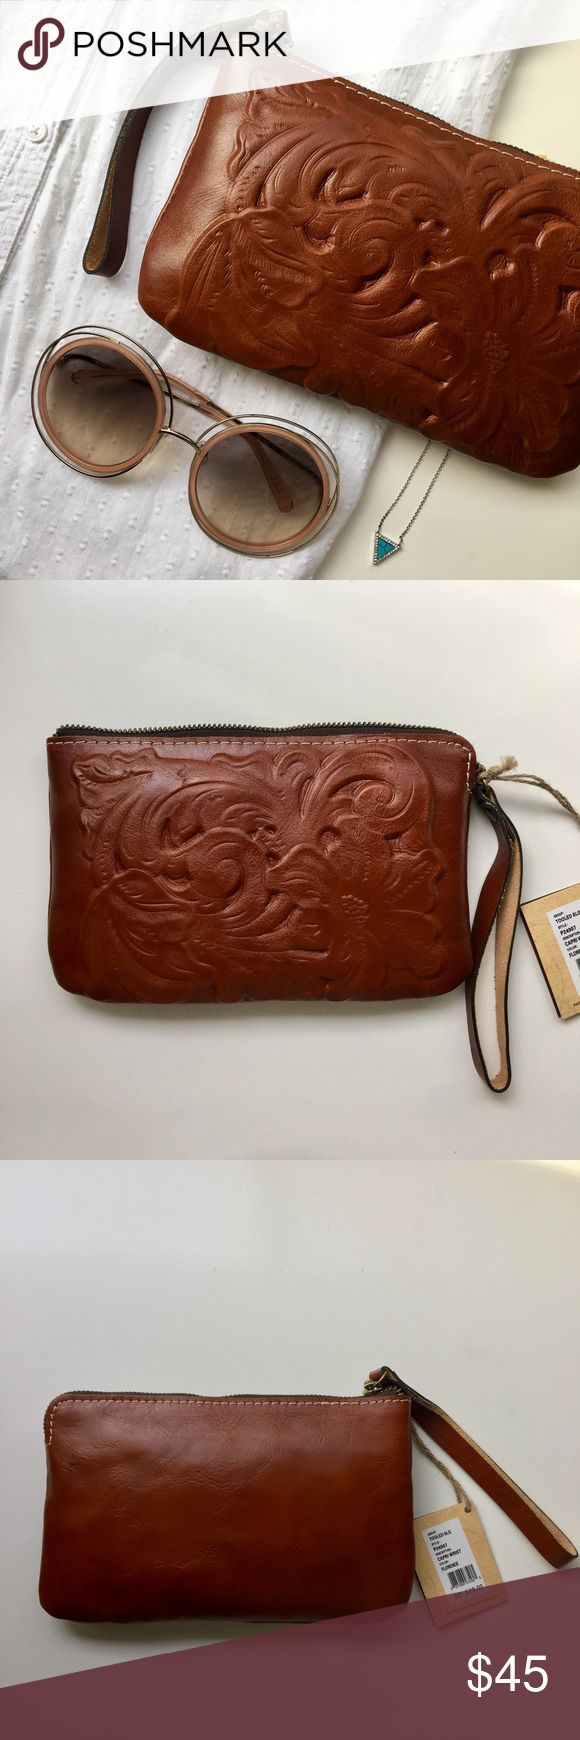 """Patricia Nash Tooled Leather Wristlet in Florence Artisanal floral embossed wristlet in a rich cognac leather. Brass tone zipper closure and leather wrist strap. Interior pockets and brand label. Dustbag included. 5""""x9"""" Fits my iPhone 6s Plus inside. Please carefully review each photo before purchase as they are the best descriptors of the item. My price is firm. No trades. First come, first served. Thank you! :) Patricia Nash Bags Clutches & Wristlets"""